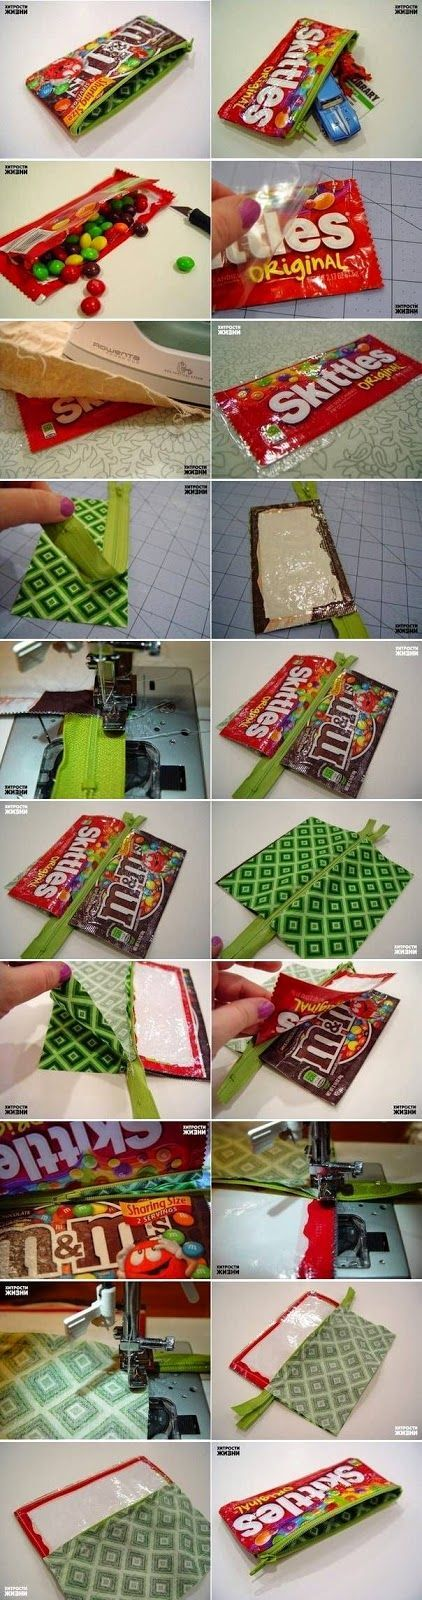 DIY skittles pouch. Easy step by step diy pictorial tutorials. #diy #doityourself #diycrafts